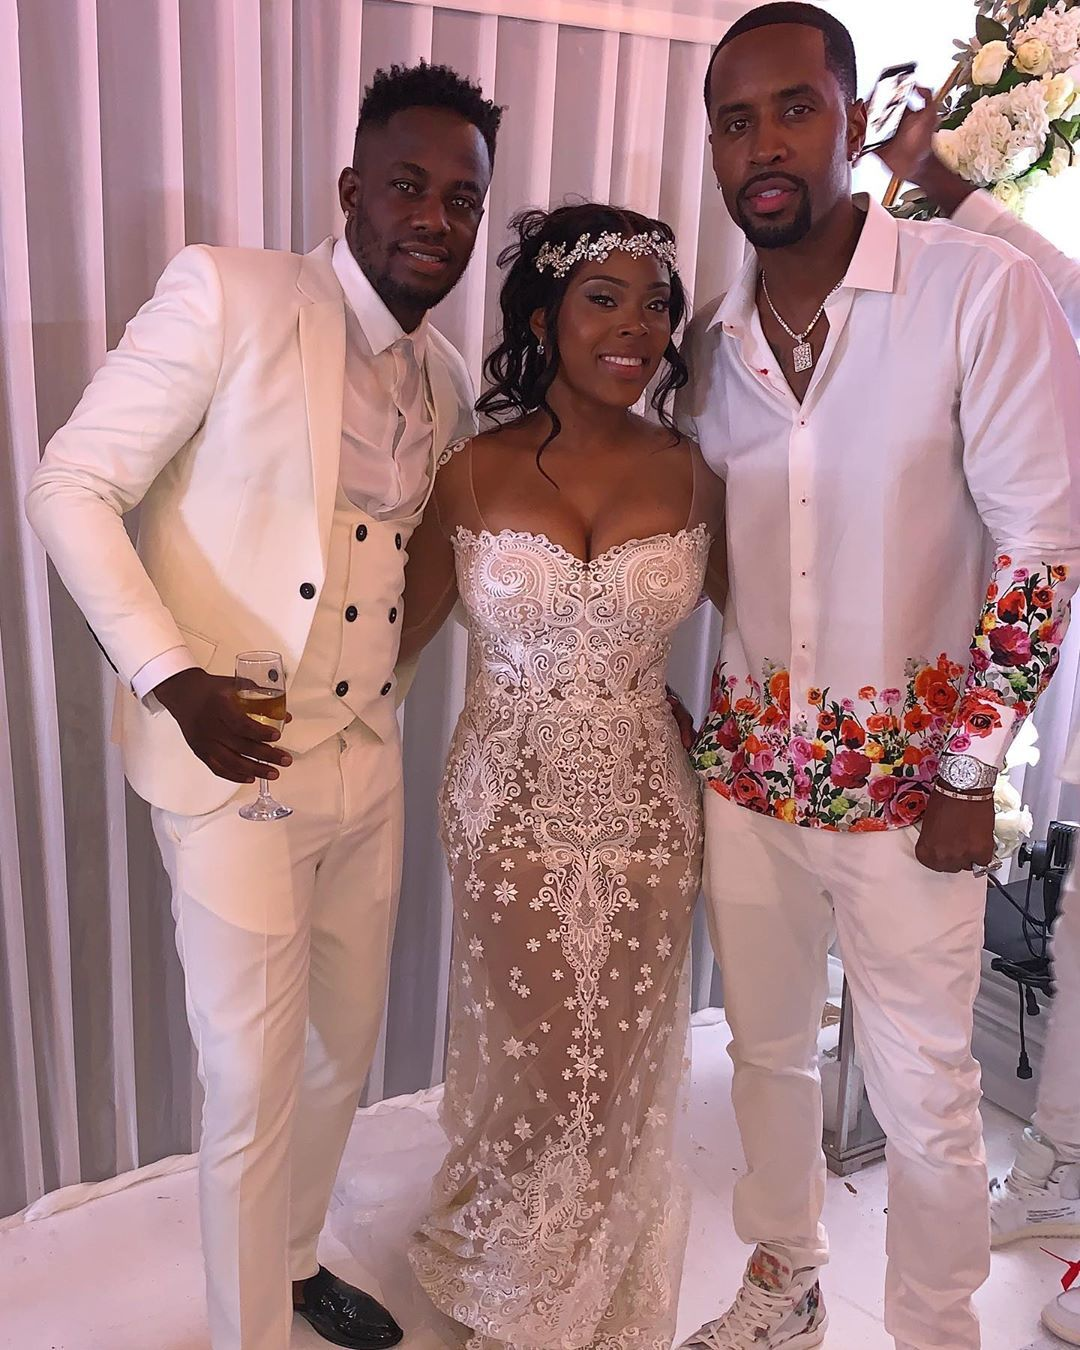 Safaree Ding Dong and Tashauna wedding